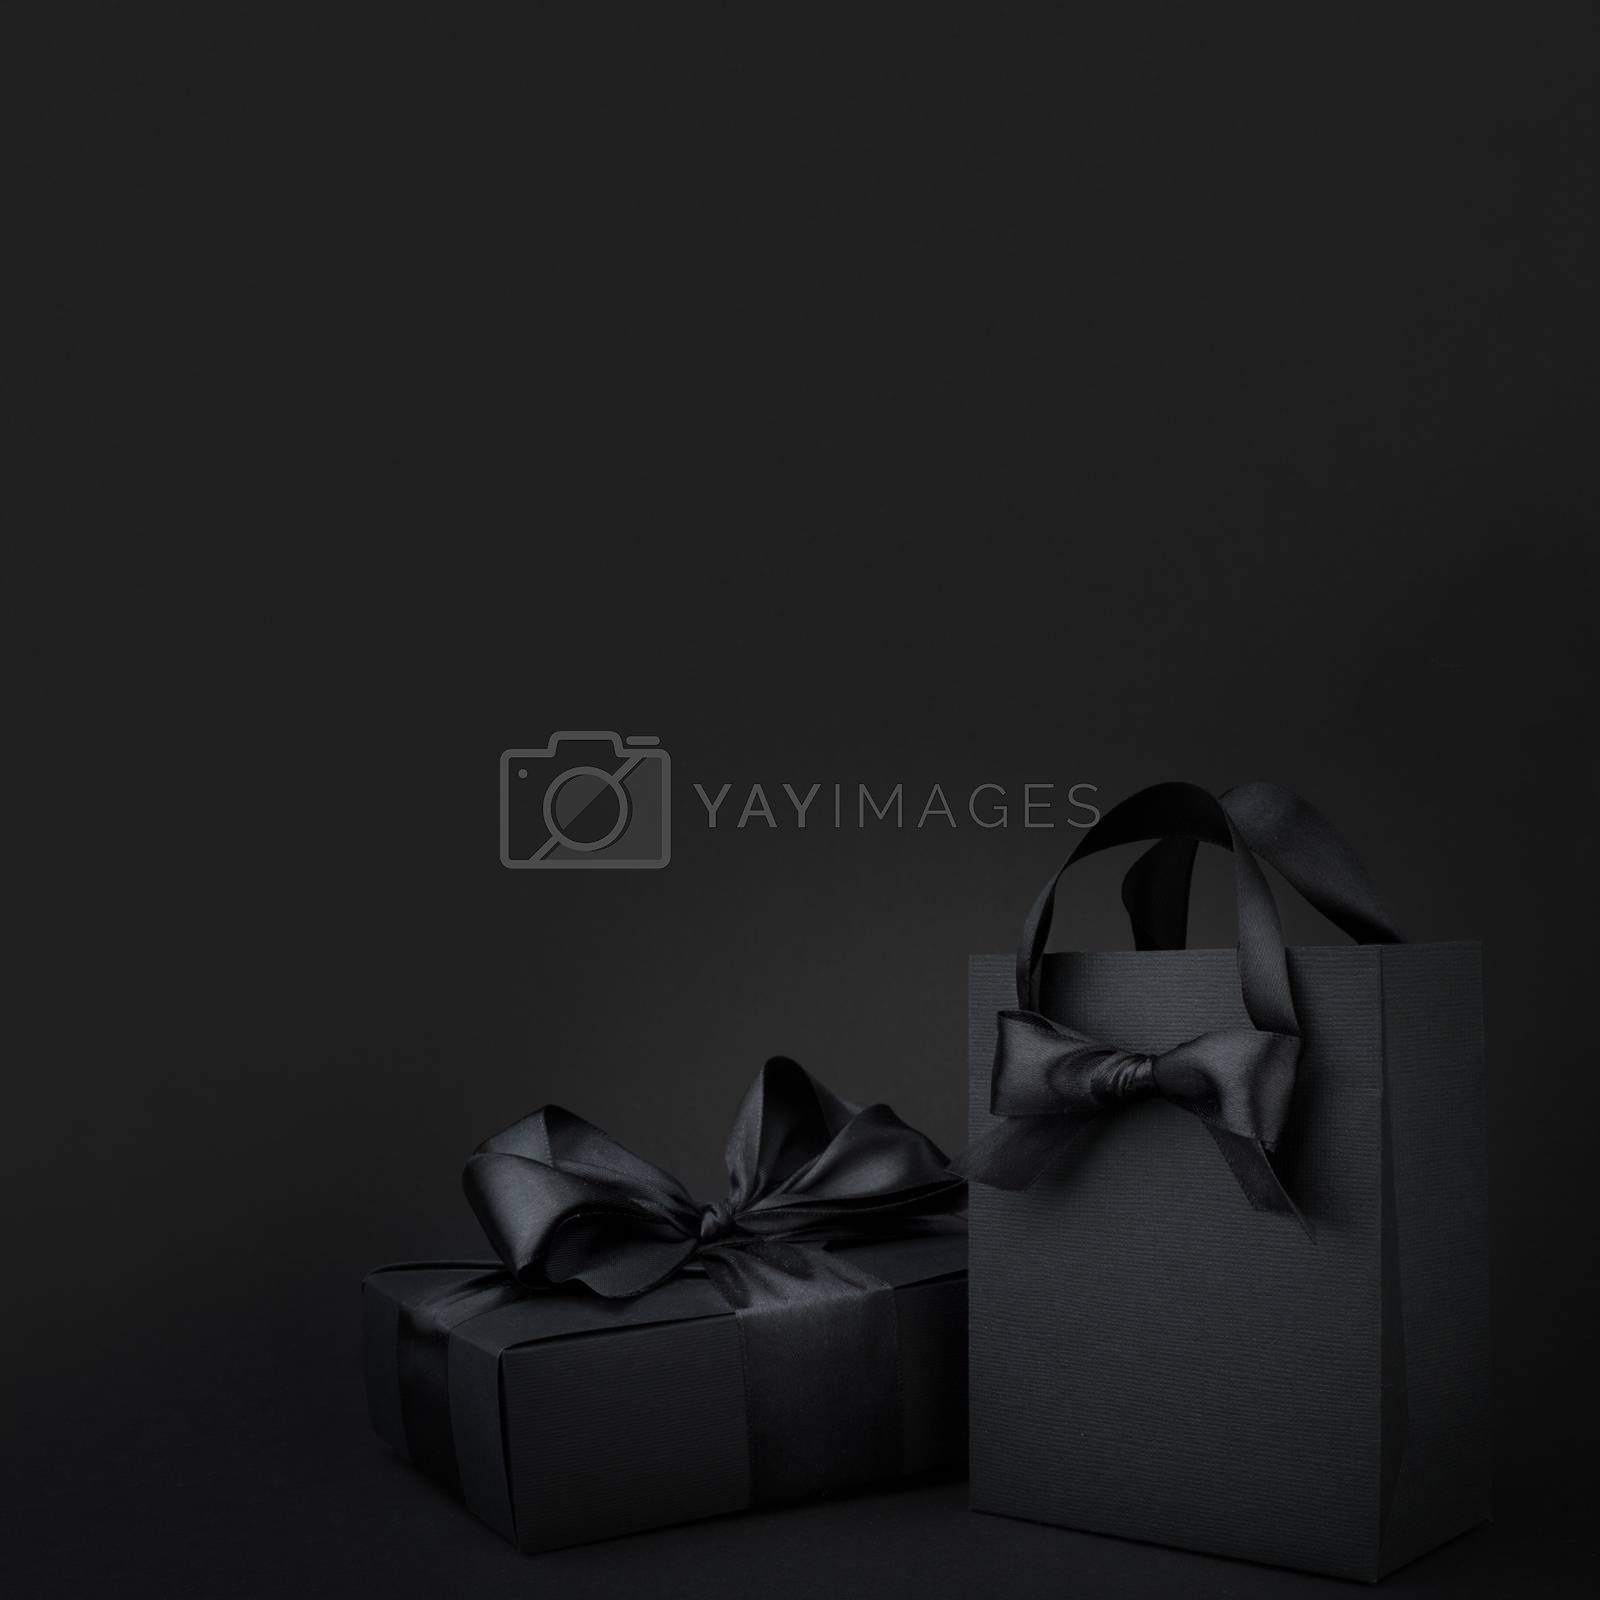 Concept sales, shopping, black friday. Paper shopping or gift bag box with silk ribbon bow on black background with copy space